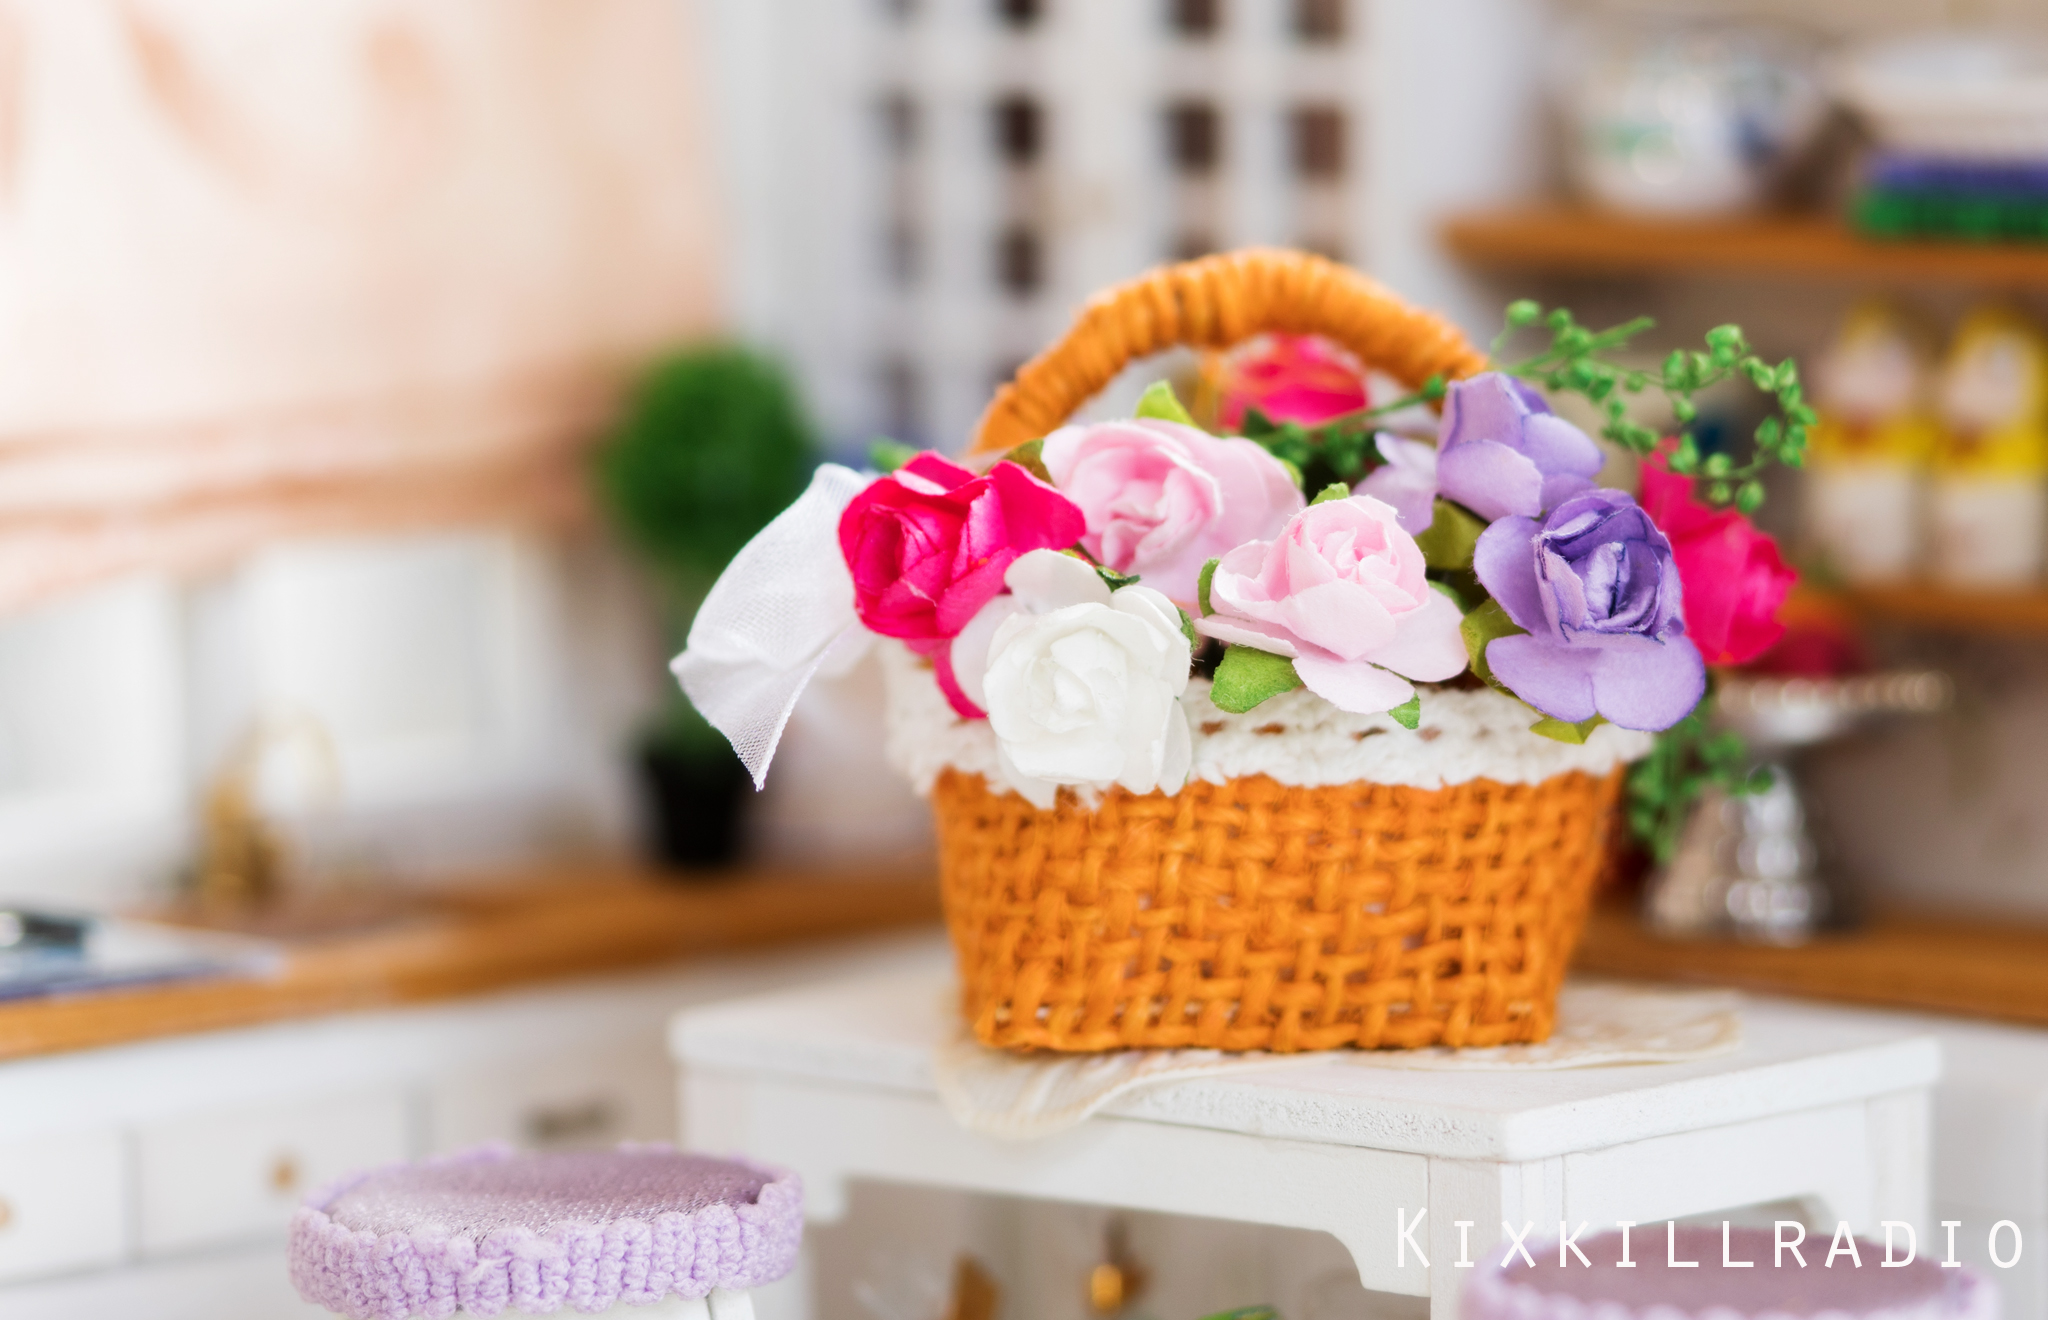 Watch how to make a miniature flower basket kixkillradio you can always improvise by using different paper flowers and ribbons mightylinksfo